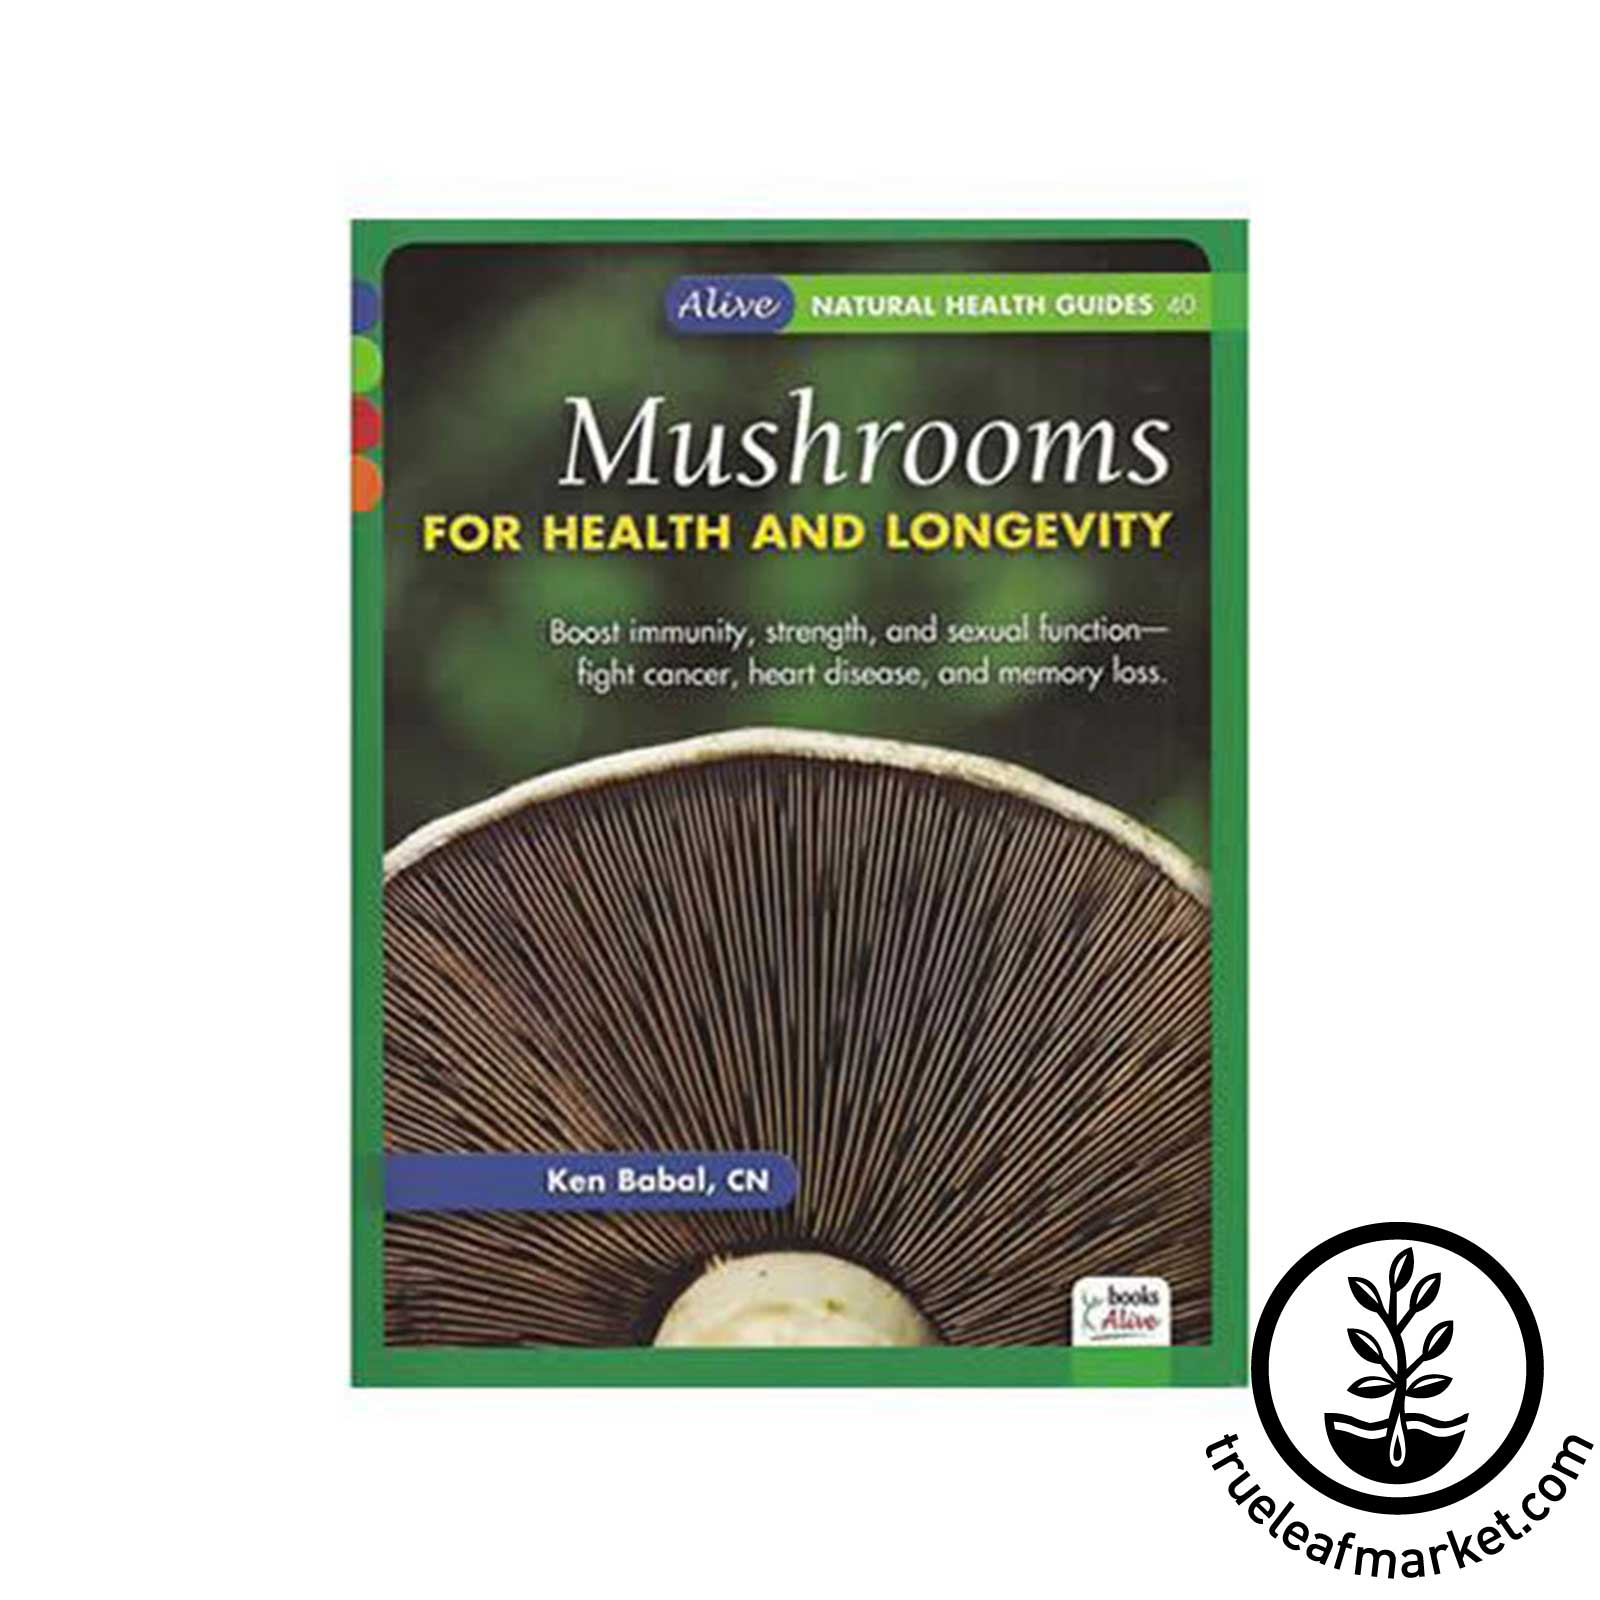 Mushrooms for Health & Longevity Book by Ken Babal medicinal mushrooms, mushroom recipes, mushroom book, fungi